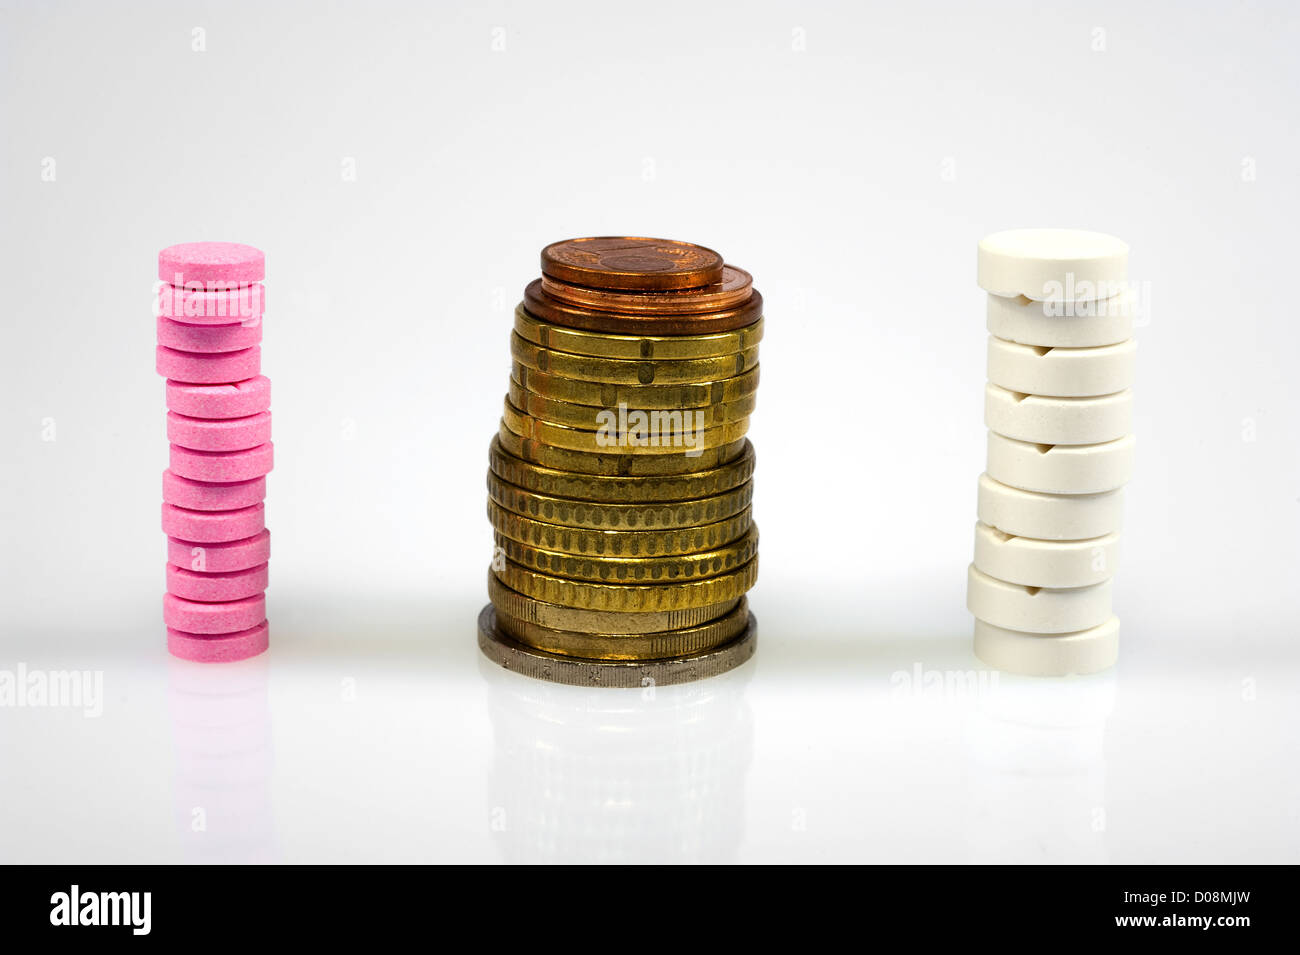 Stapled euro coins between pills and medicines - Stock Image